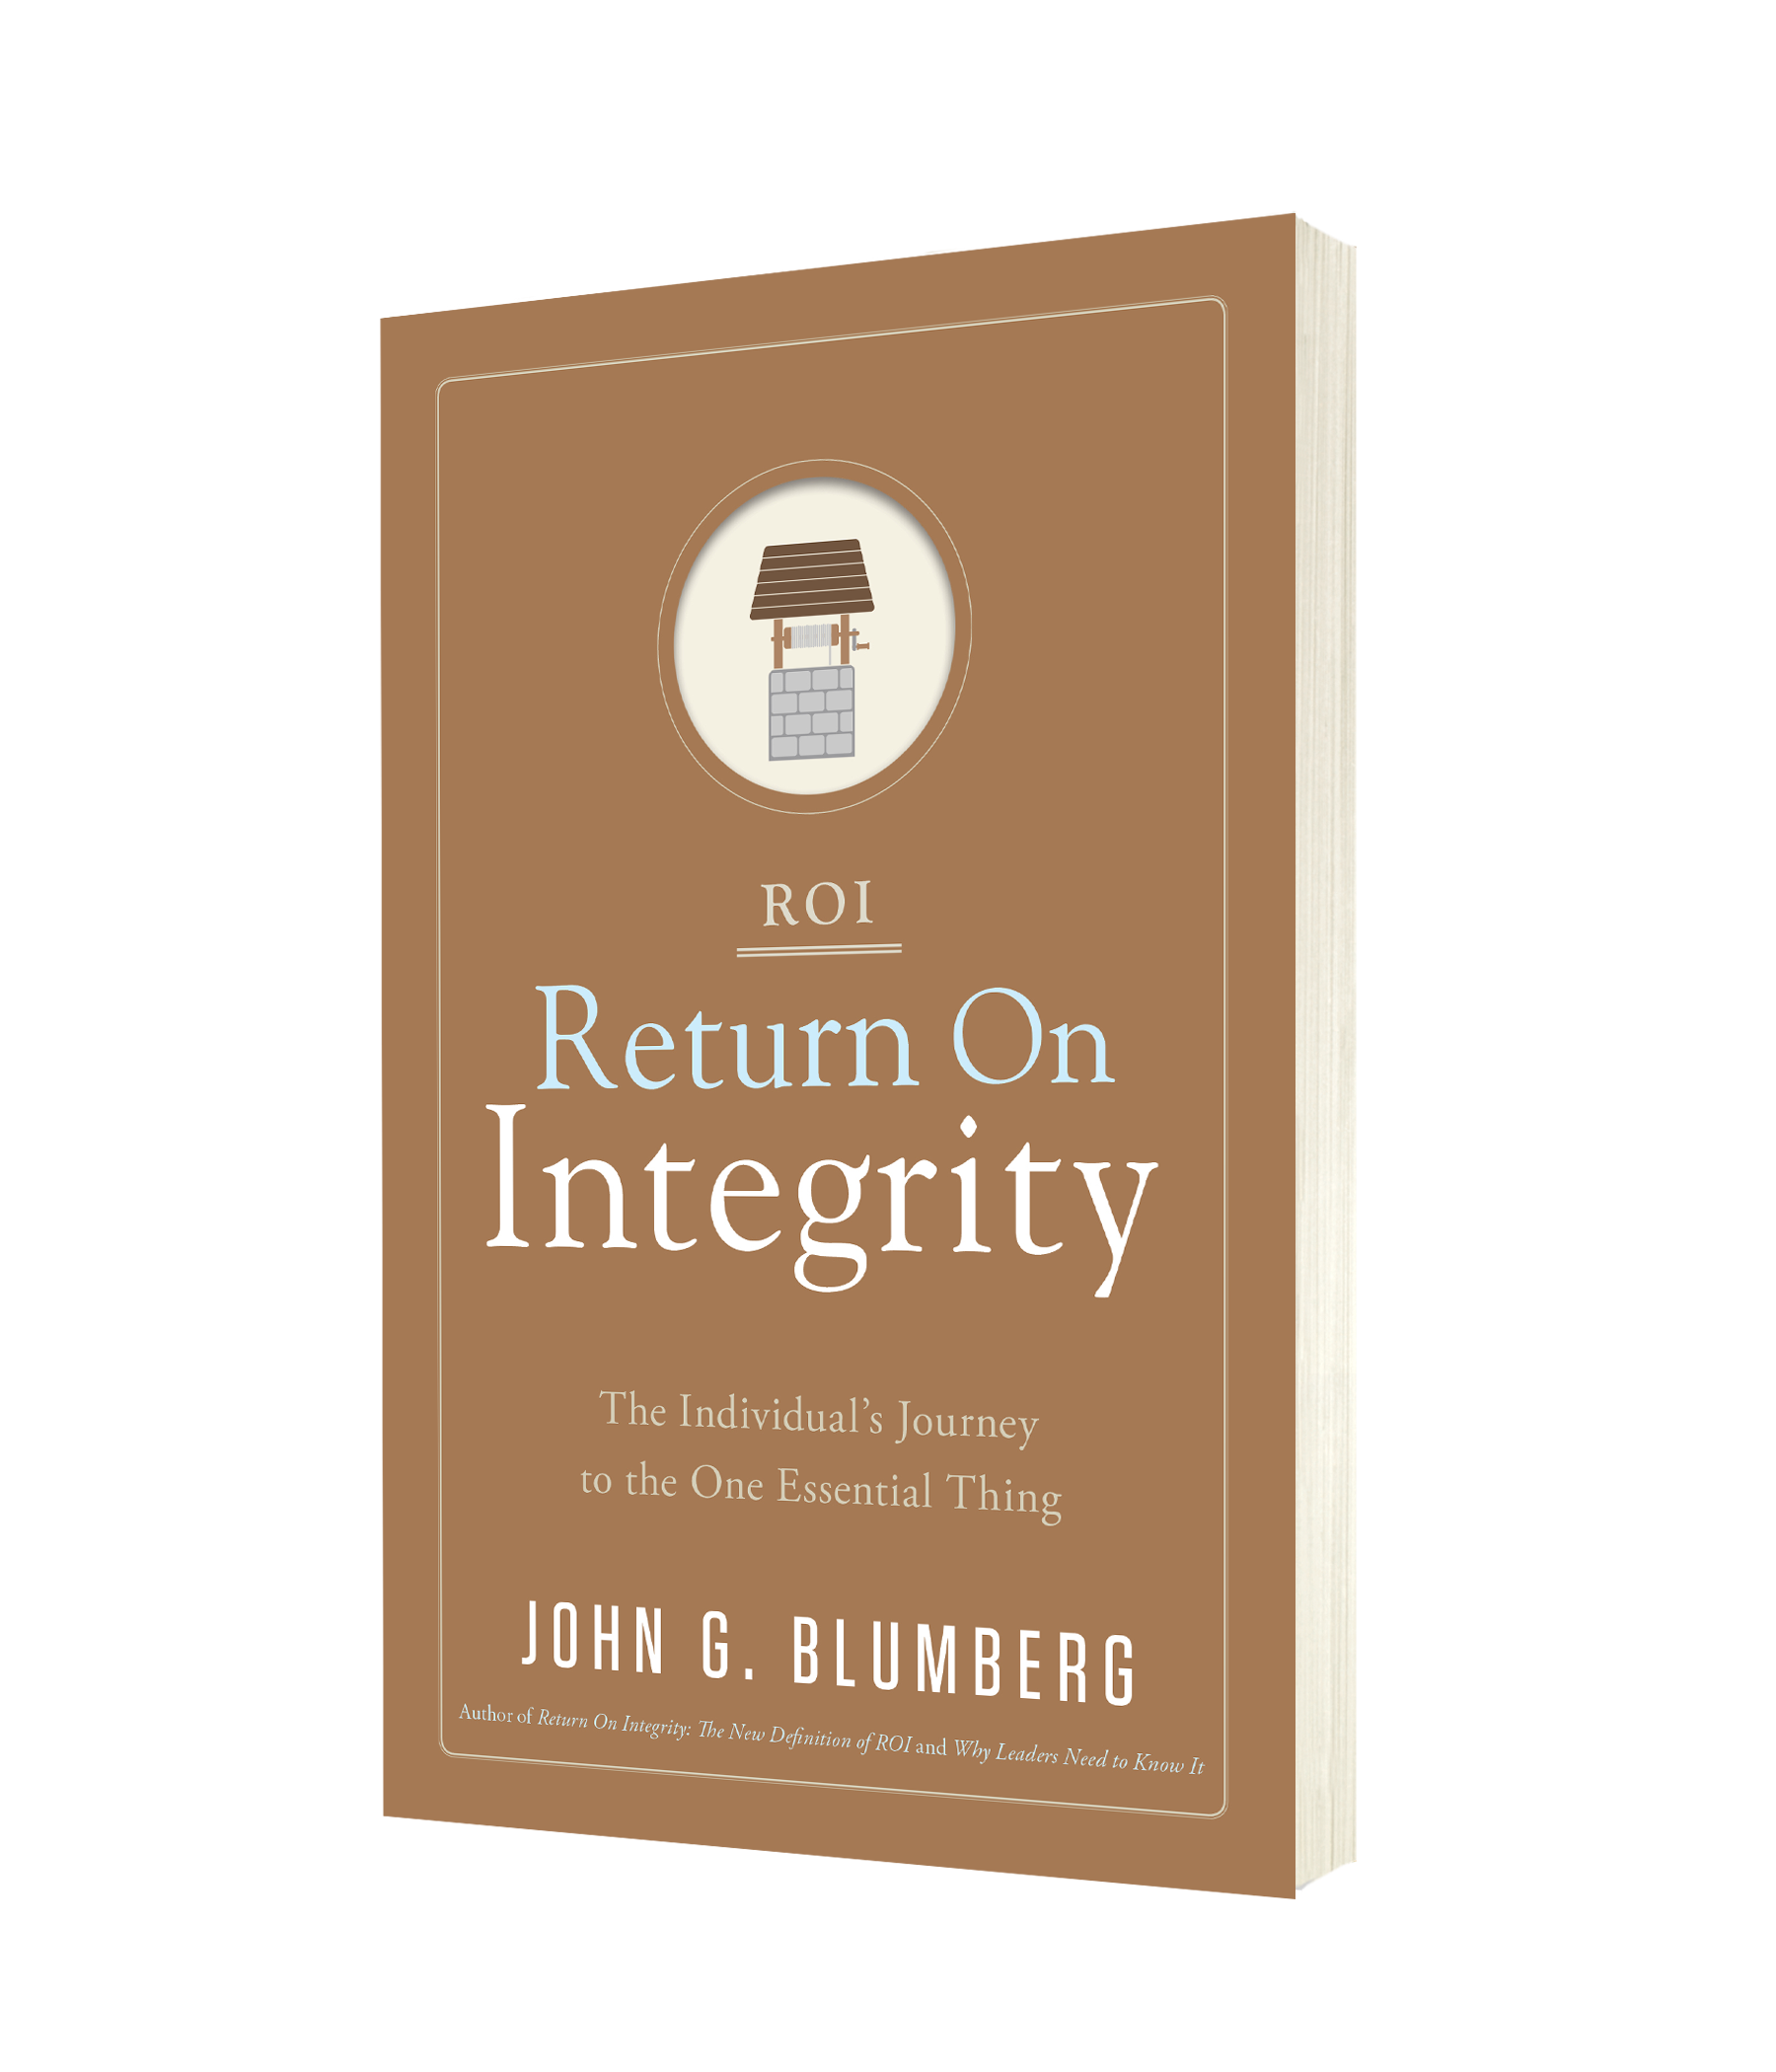 Return on Integrity: The Individual's Journey to the One Essential Thing